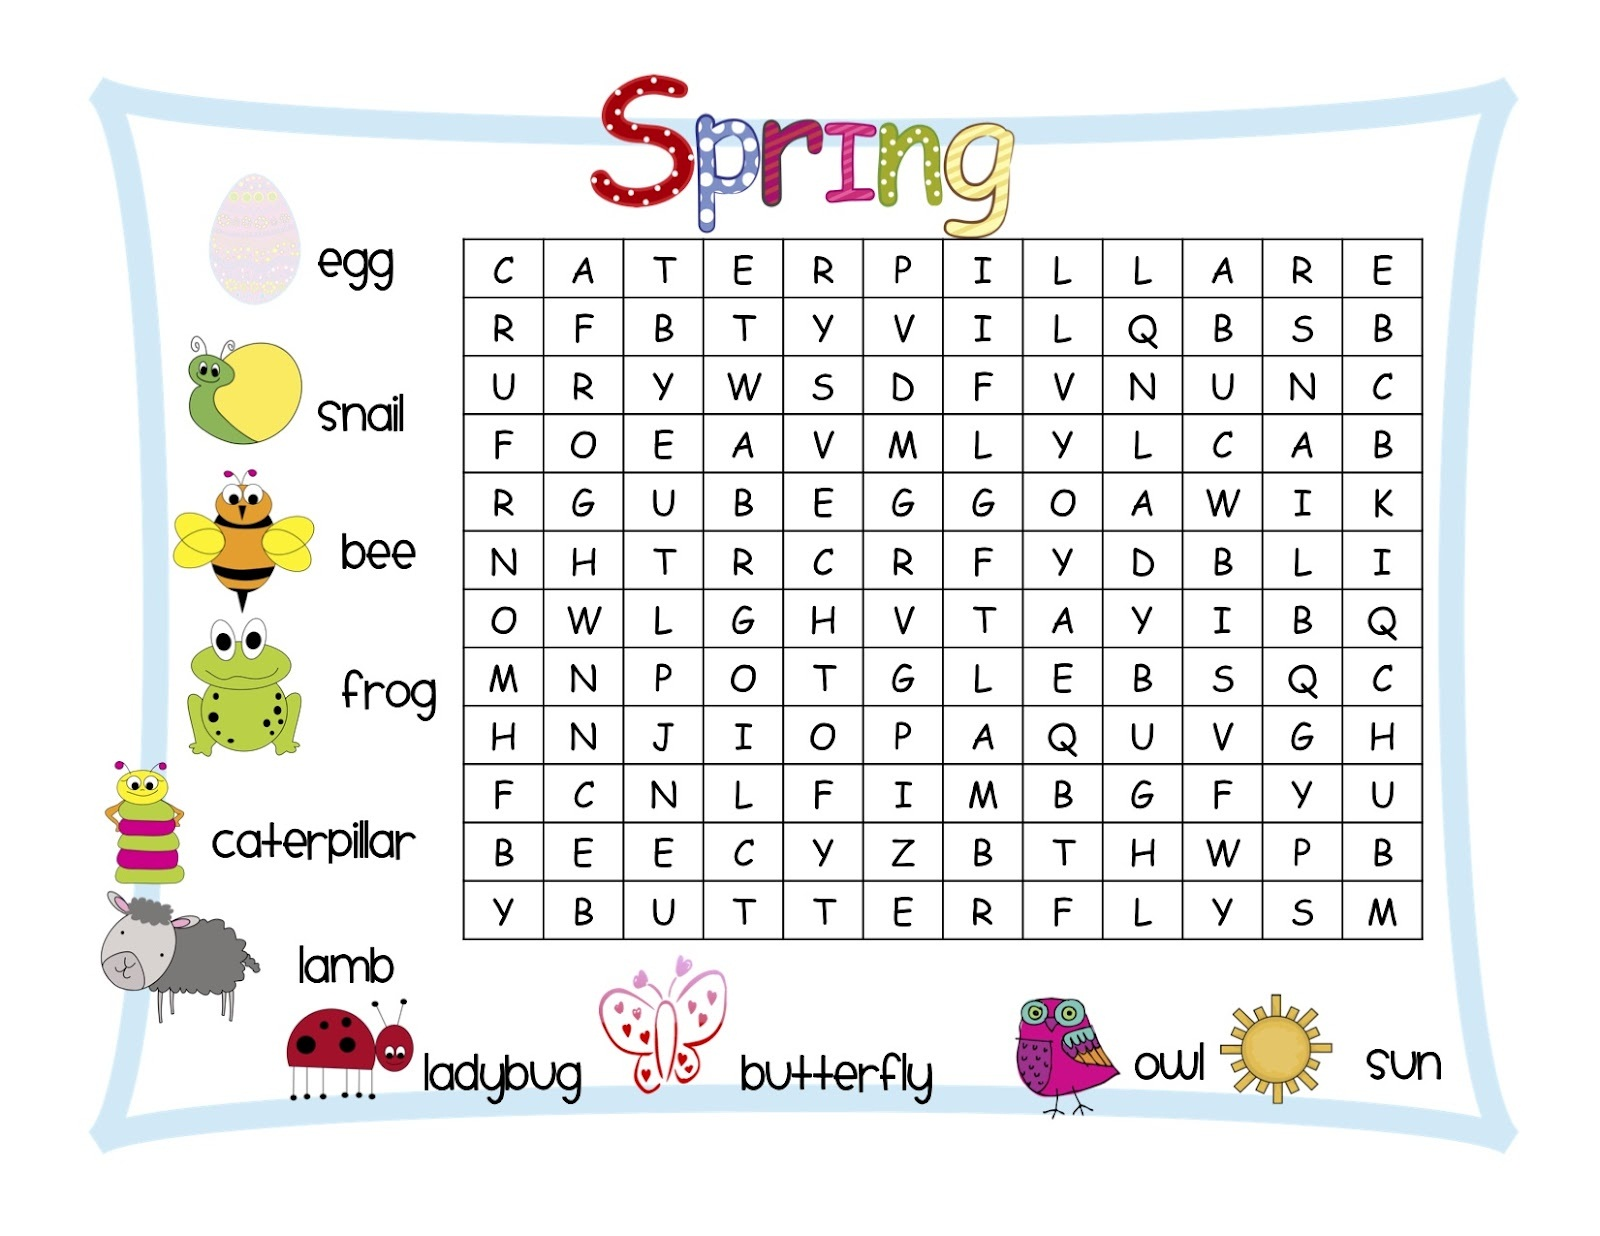 fun-word-searches-for-kids-spring